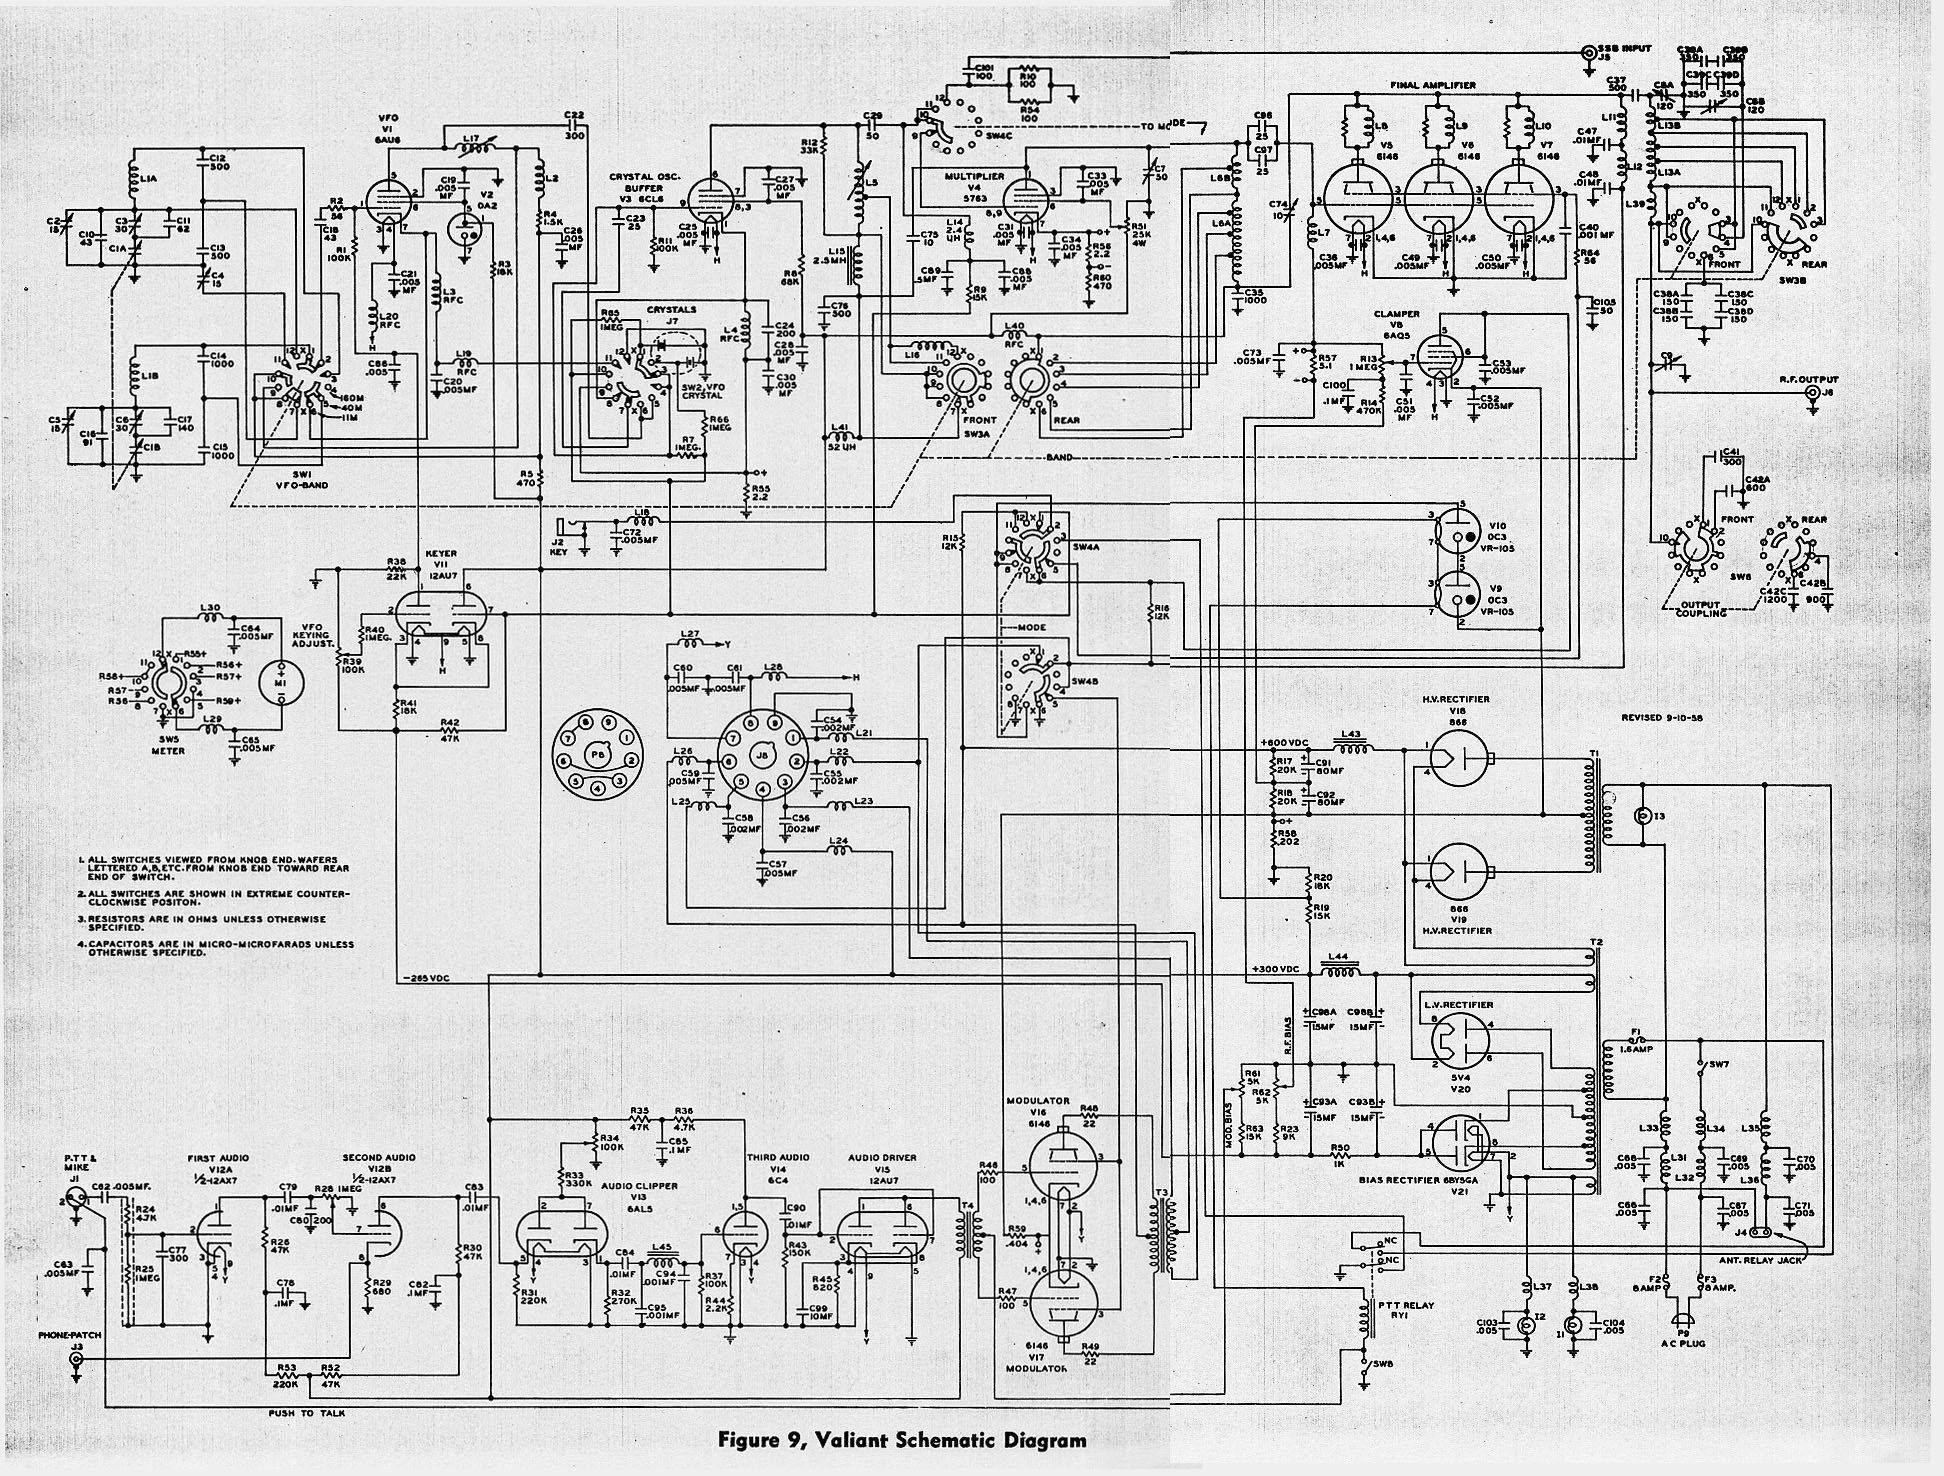 1955 1962 Ef Johnson Viking Valiant Am Cw Transmitter Starting Circuit Diagram For The Mercury All Models Schematic